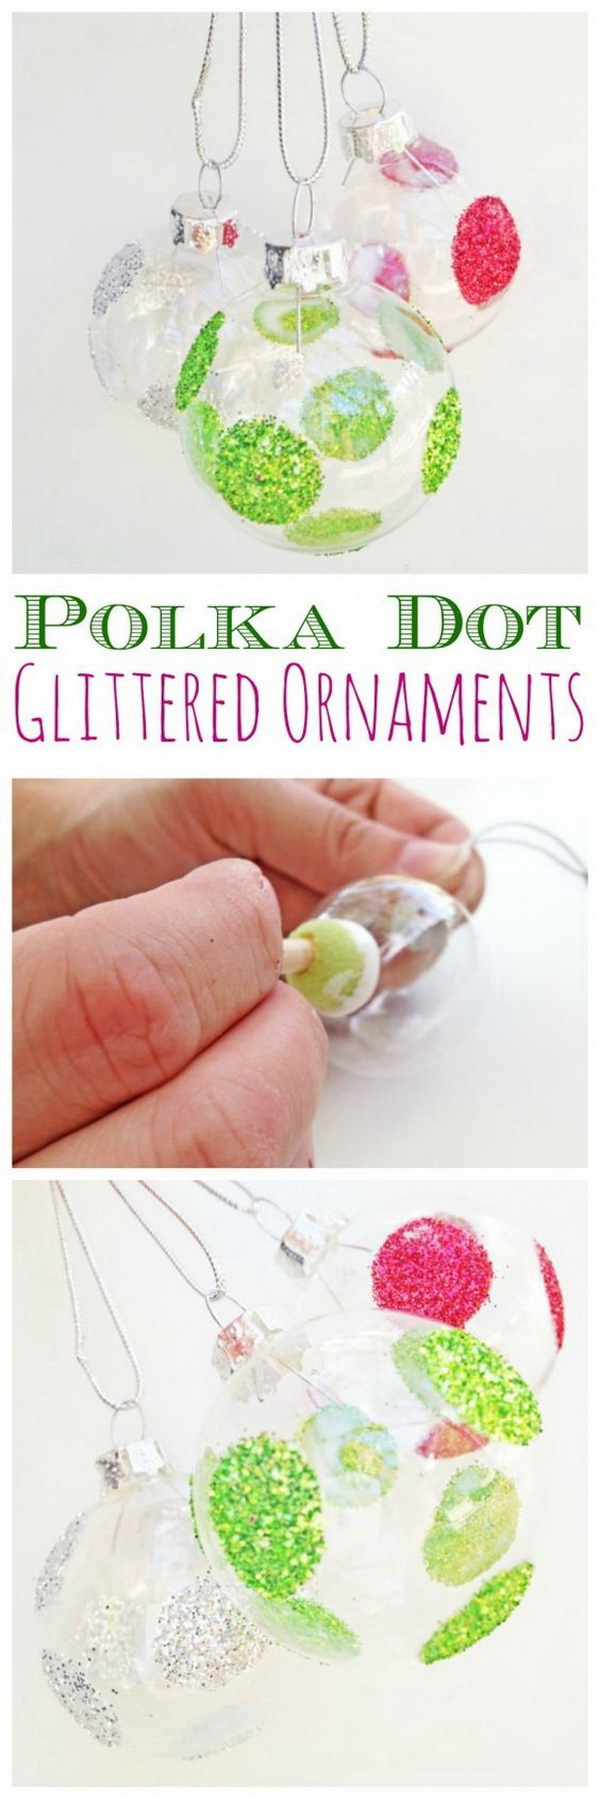 Polka Dot Glittered Ornaments DIY.